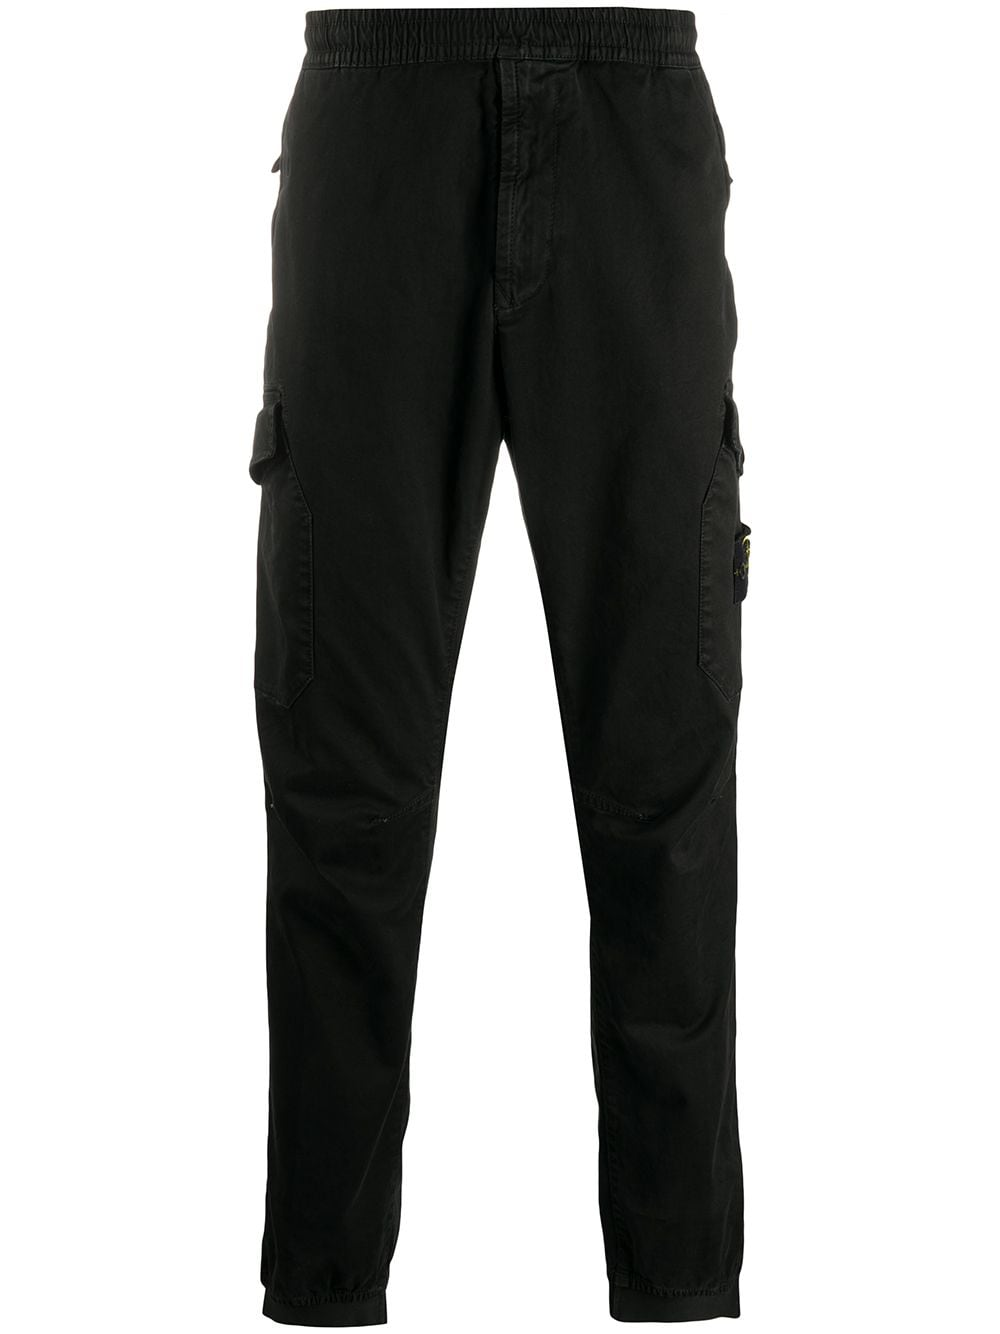 Black cotton-blend slim cotton cargo pants featuring elasticated waistband STONE ISLAND |  | 7315314L1V0129